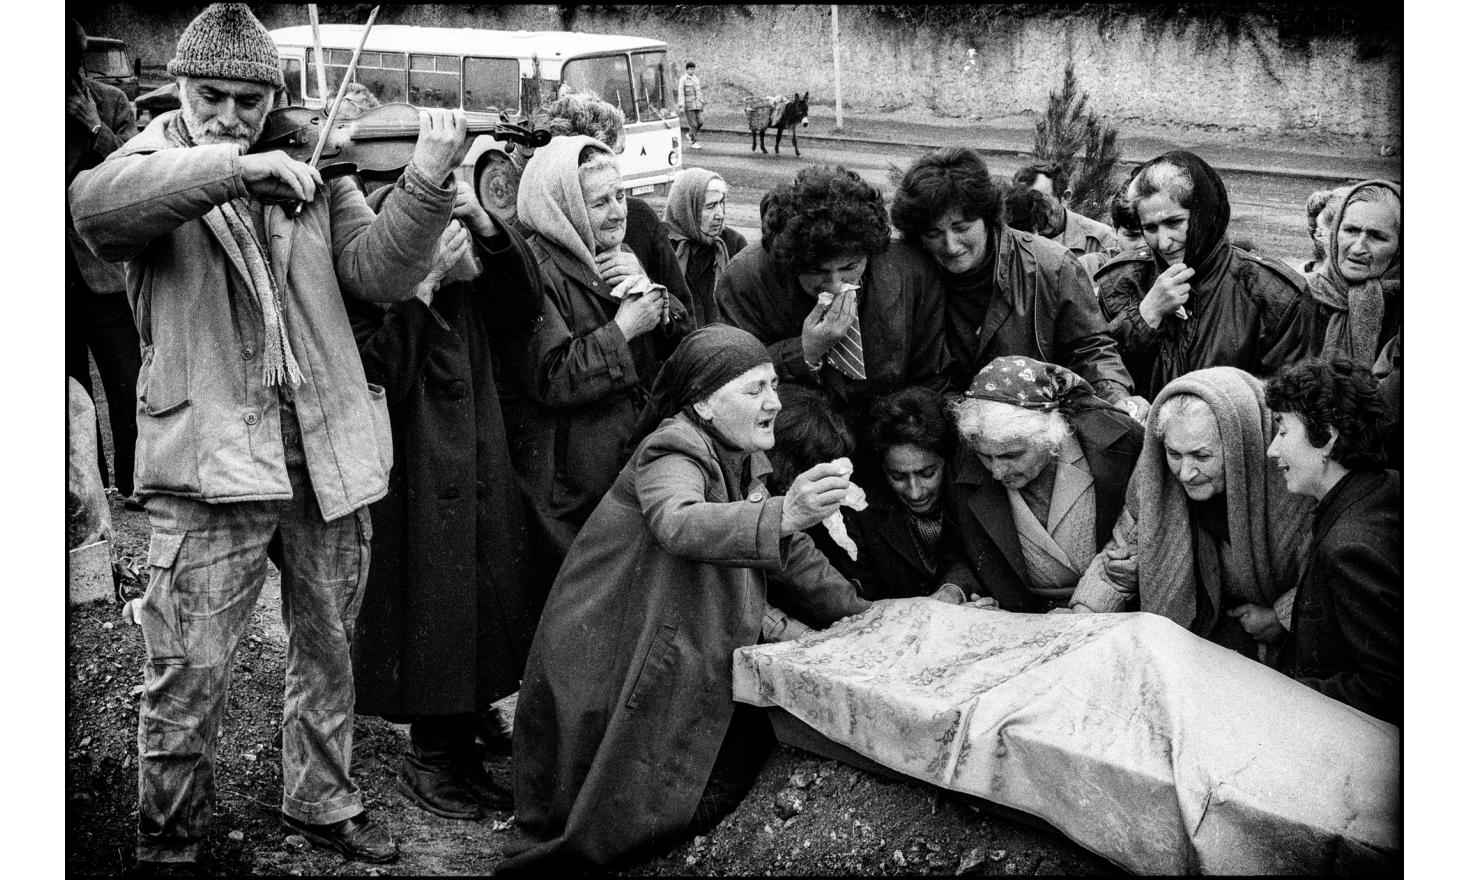 Funerals of an officer killed at the front line with the Azeri forces. Stepanakert, Nagorny Karabakh. 04-1994